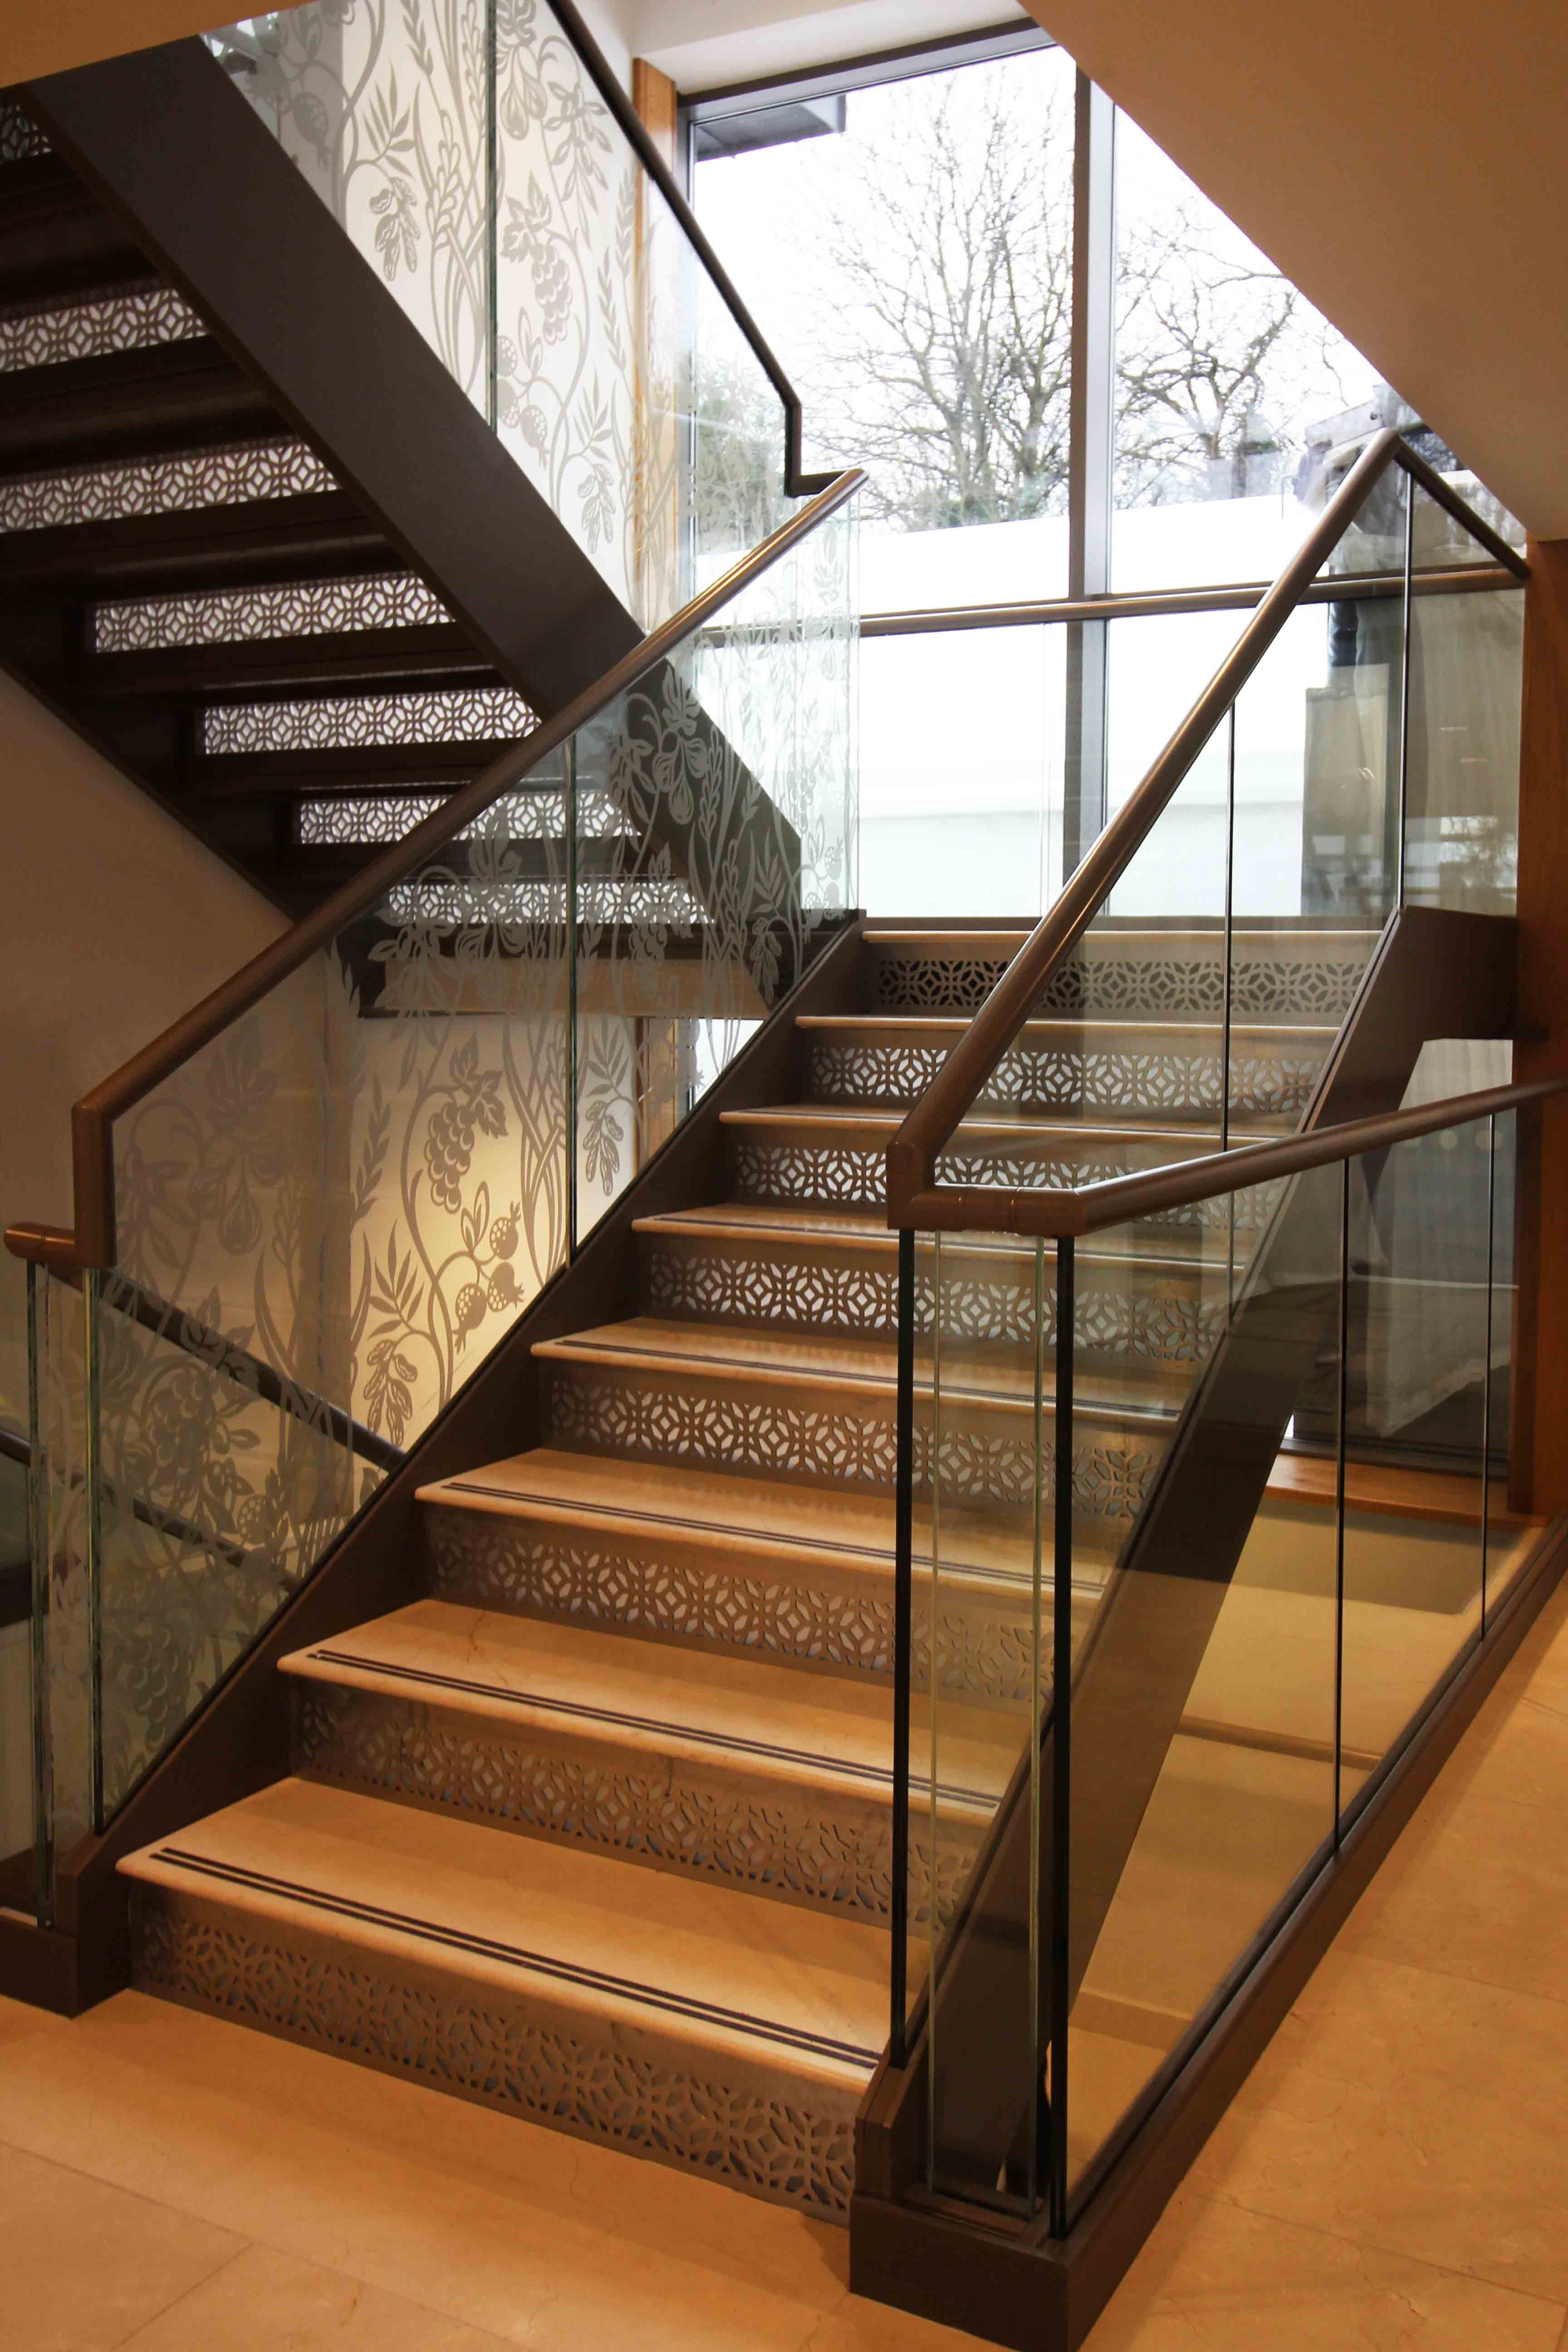 Laser Cut Screens   Stair Risers   Design By Miles And Lincoln.  Www.milesandlincoln